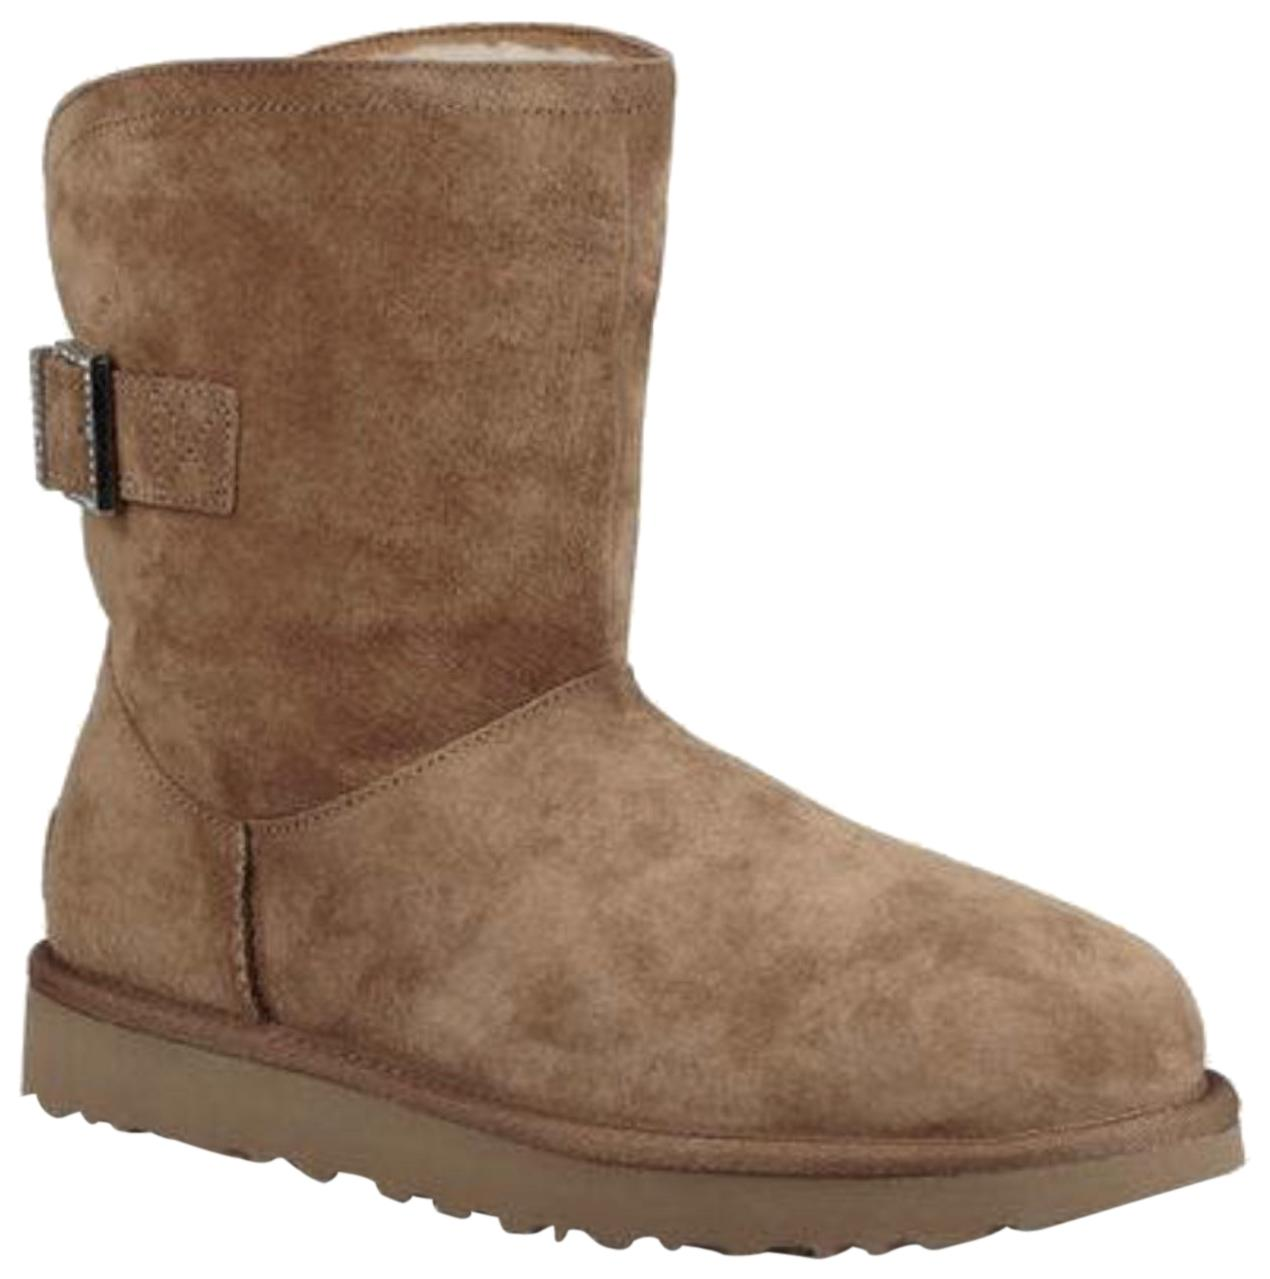 8fe0b4d55b1 discount code for ugg bailey button chestnut size 8 pdf 11c94 f6b1e